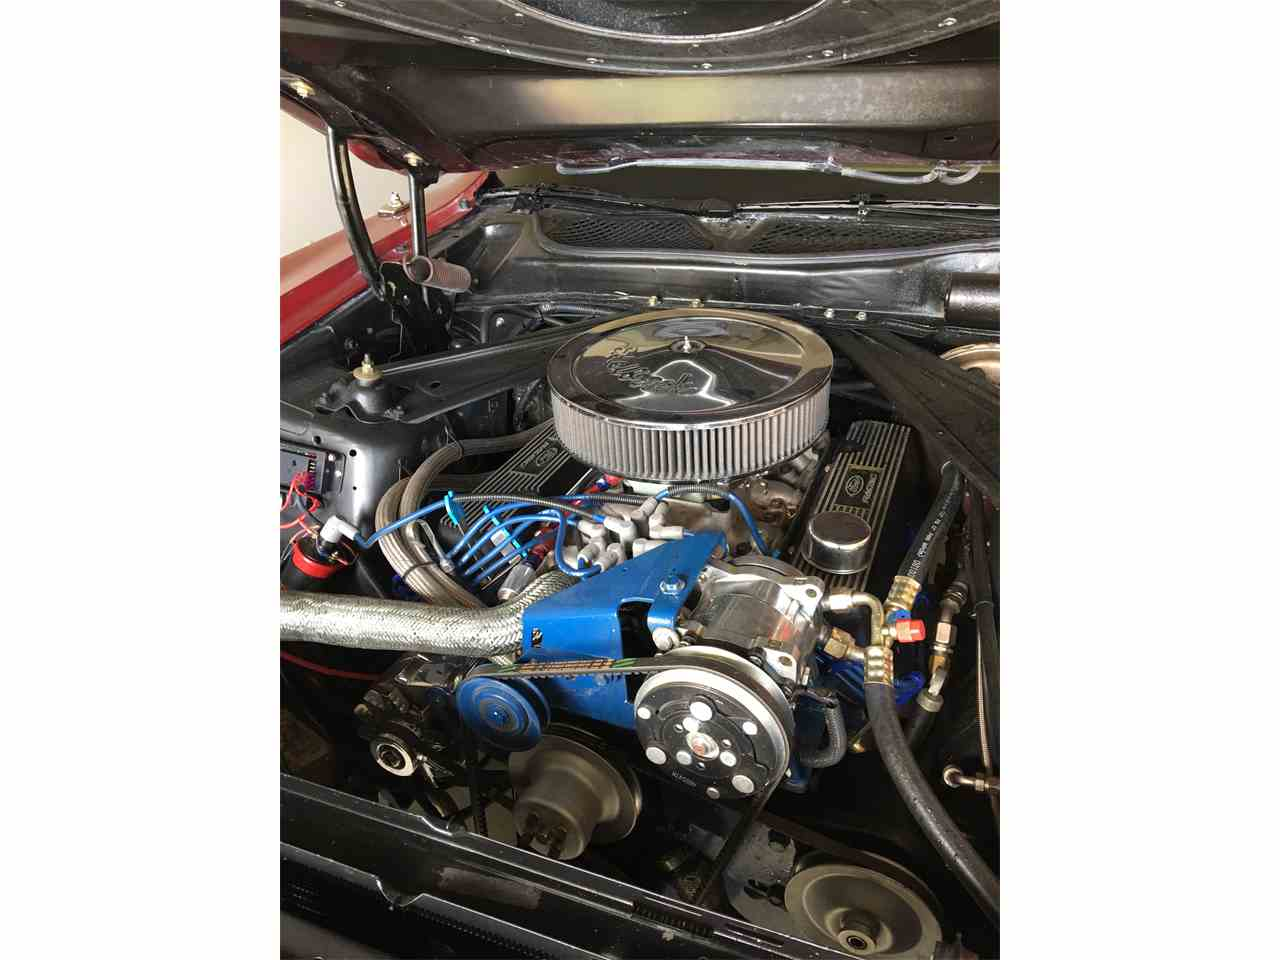 Large Picture of 1973 Mustang (Roush) - $18,000.00 - LRQU